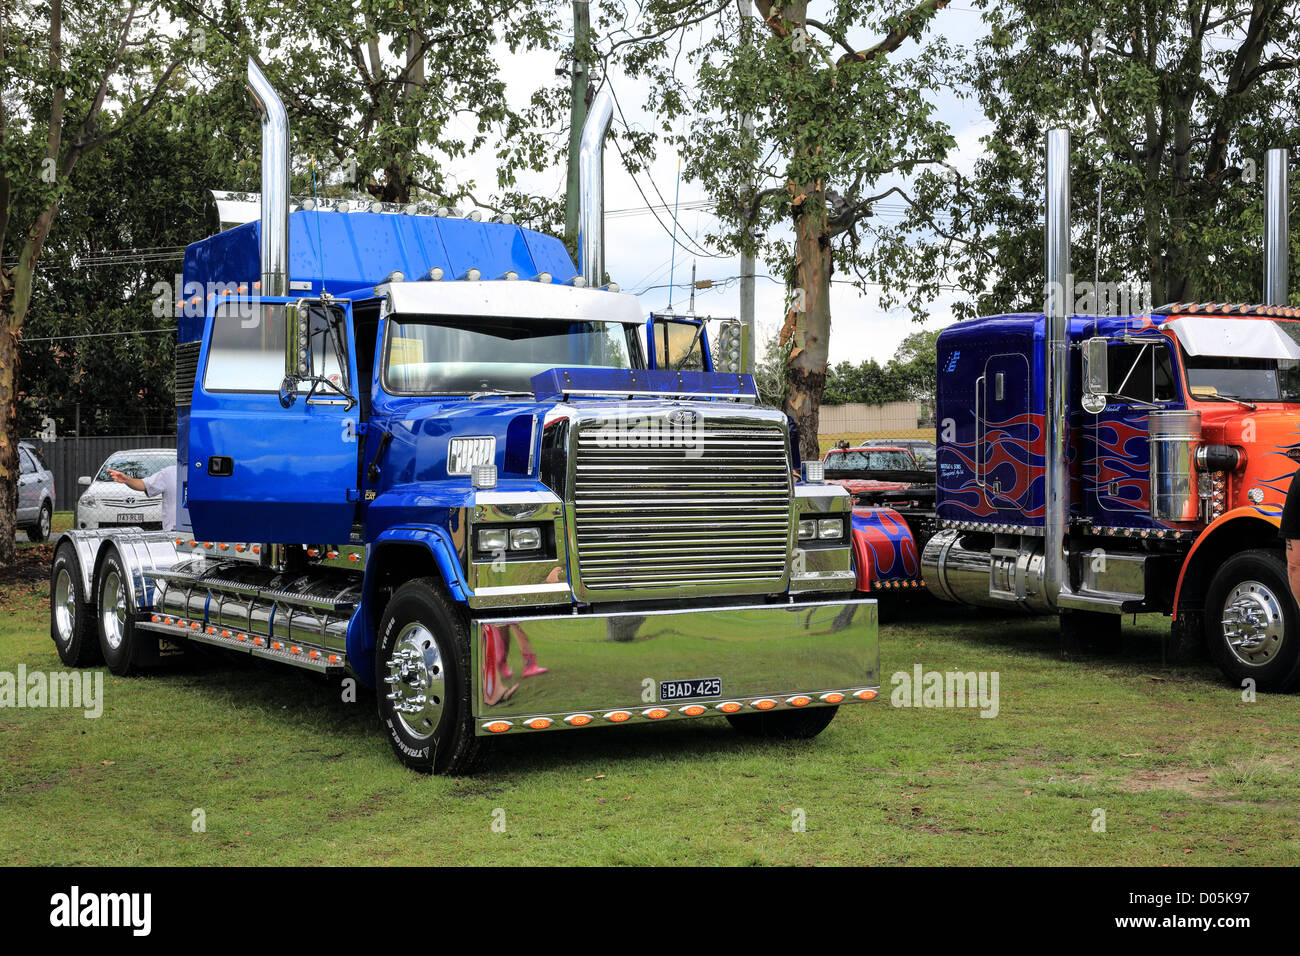 Heavy haulage truck decorated with highly polished stainless steel fittings and elegant decals on display at the - Stock Image